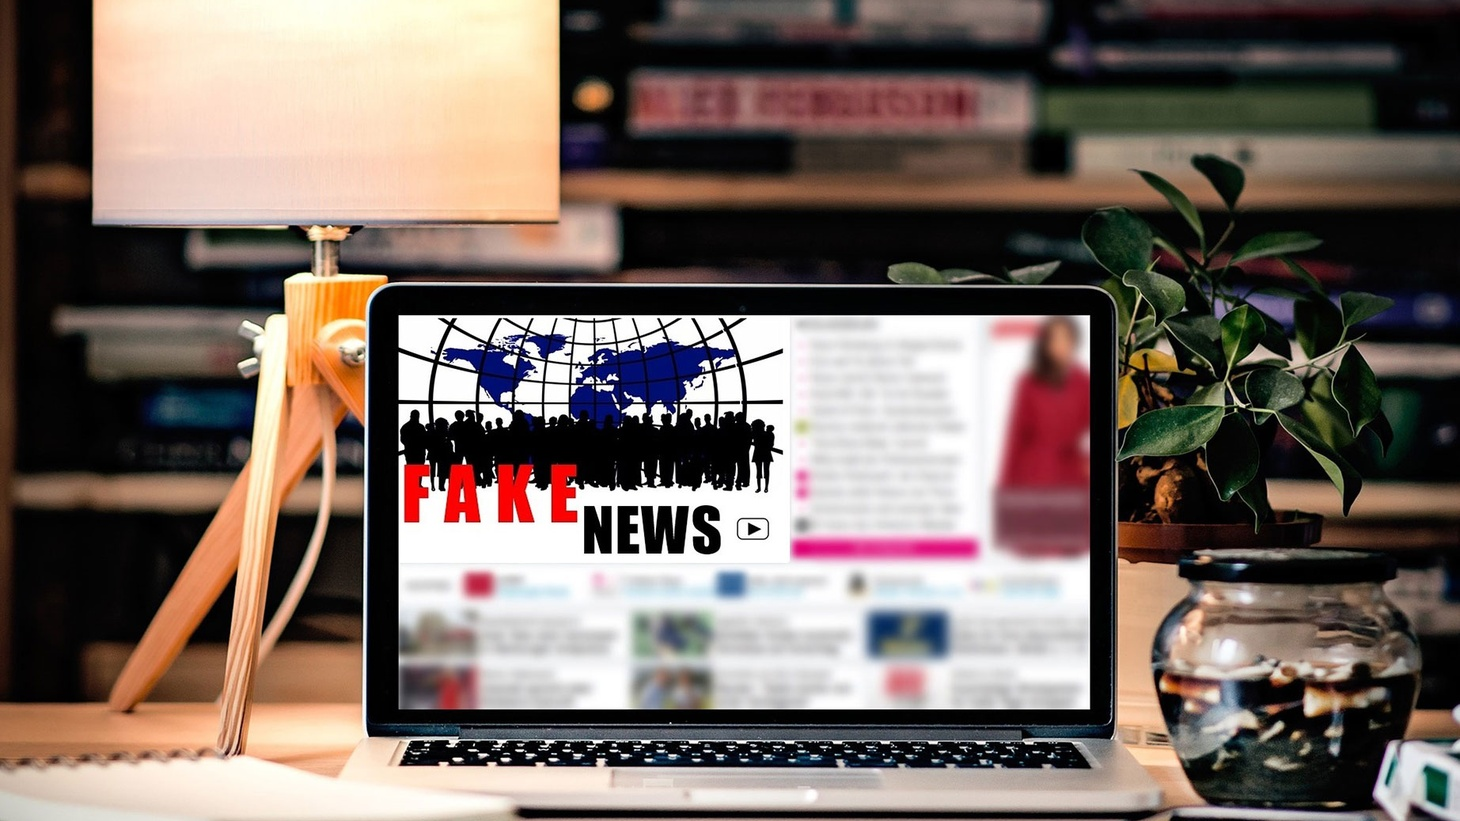 News, politics and democracy in a post-truth world. It's an old problem that's worse than ever before. Guest host Barbara Bogaev explores what mainstream media, tech companies, and educators are doing to raise media literacy in a post-fact world.